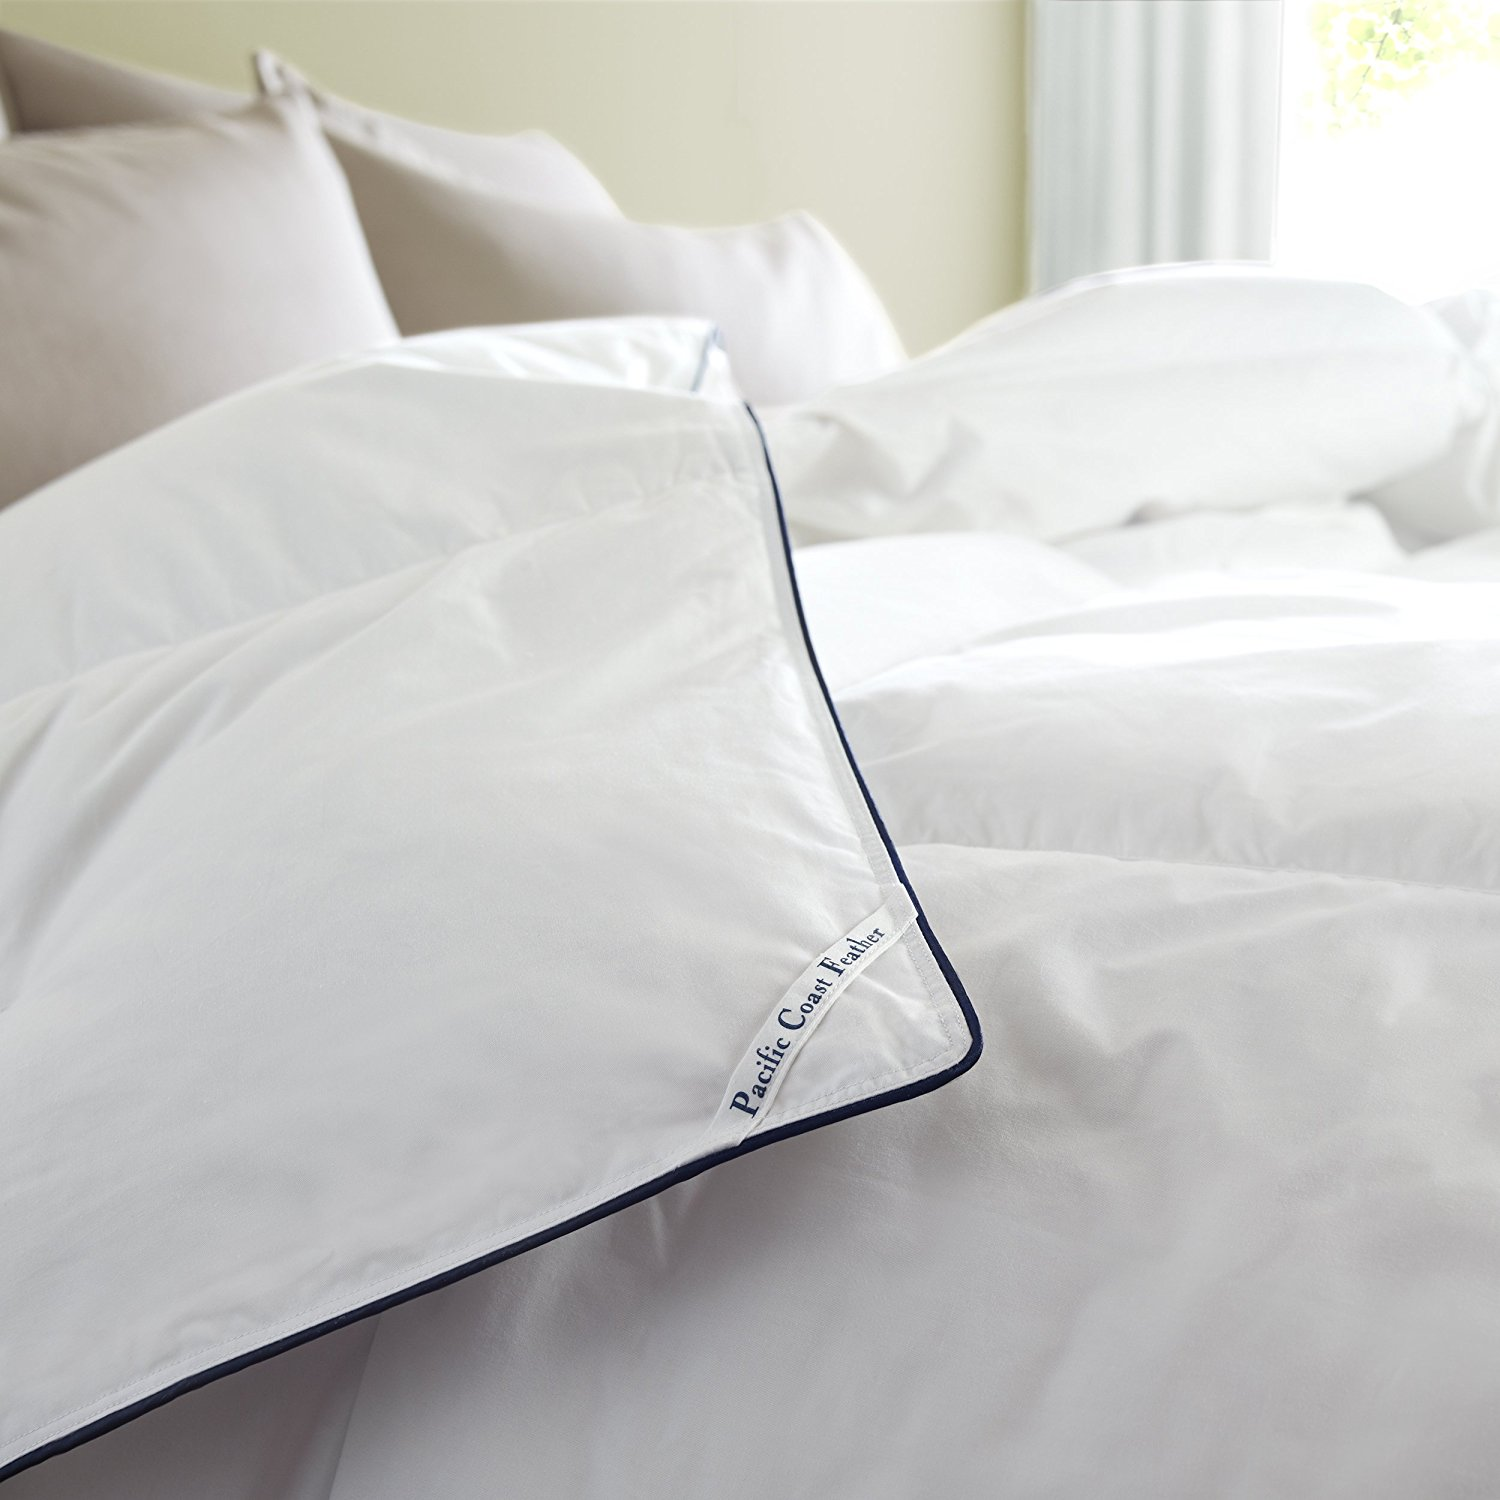 Pacific Coast Comforter | Best Down Comforters | Pacific Coast Comforter Review